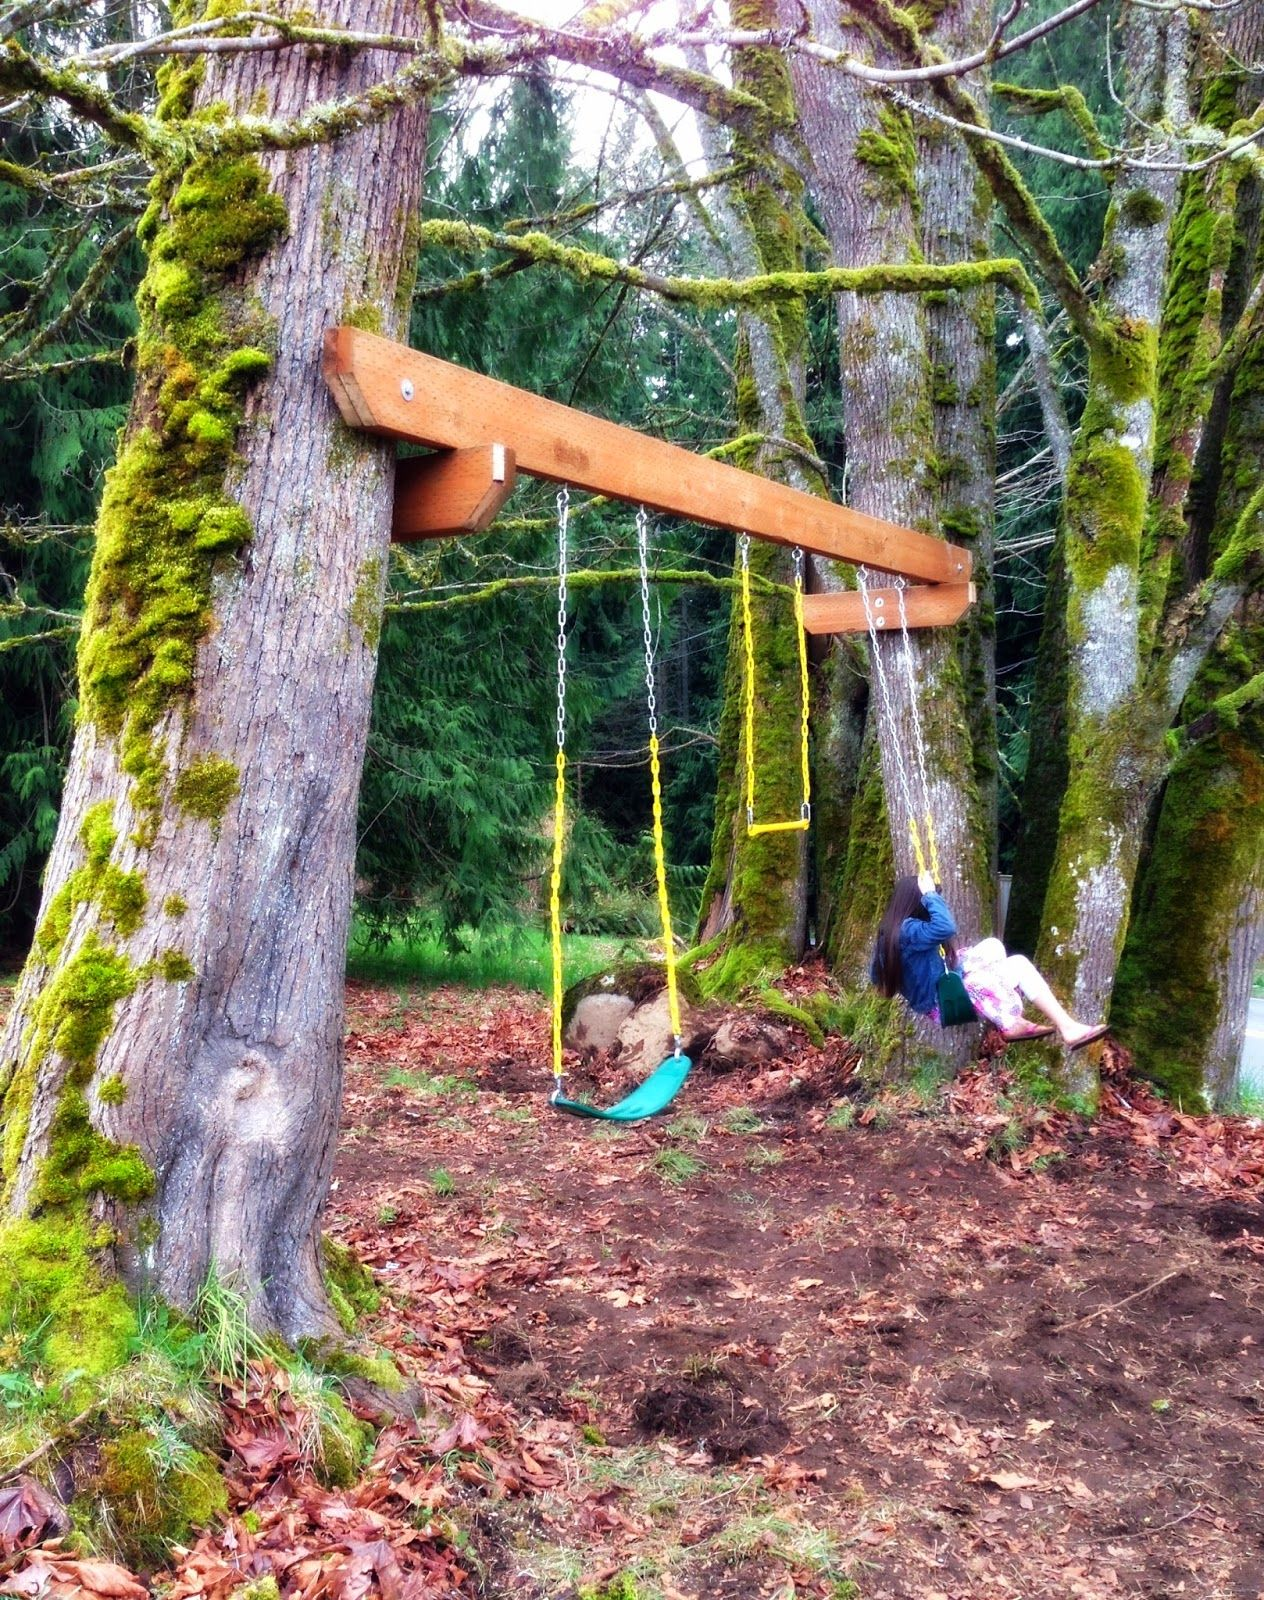 The Tuscan Home Spring Break Tree Swing Project kids